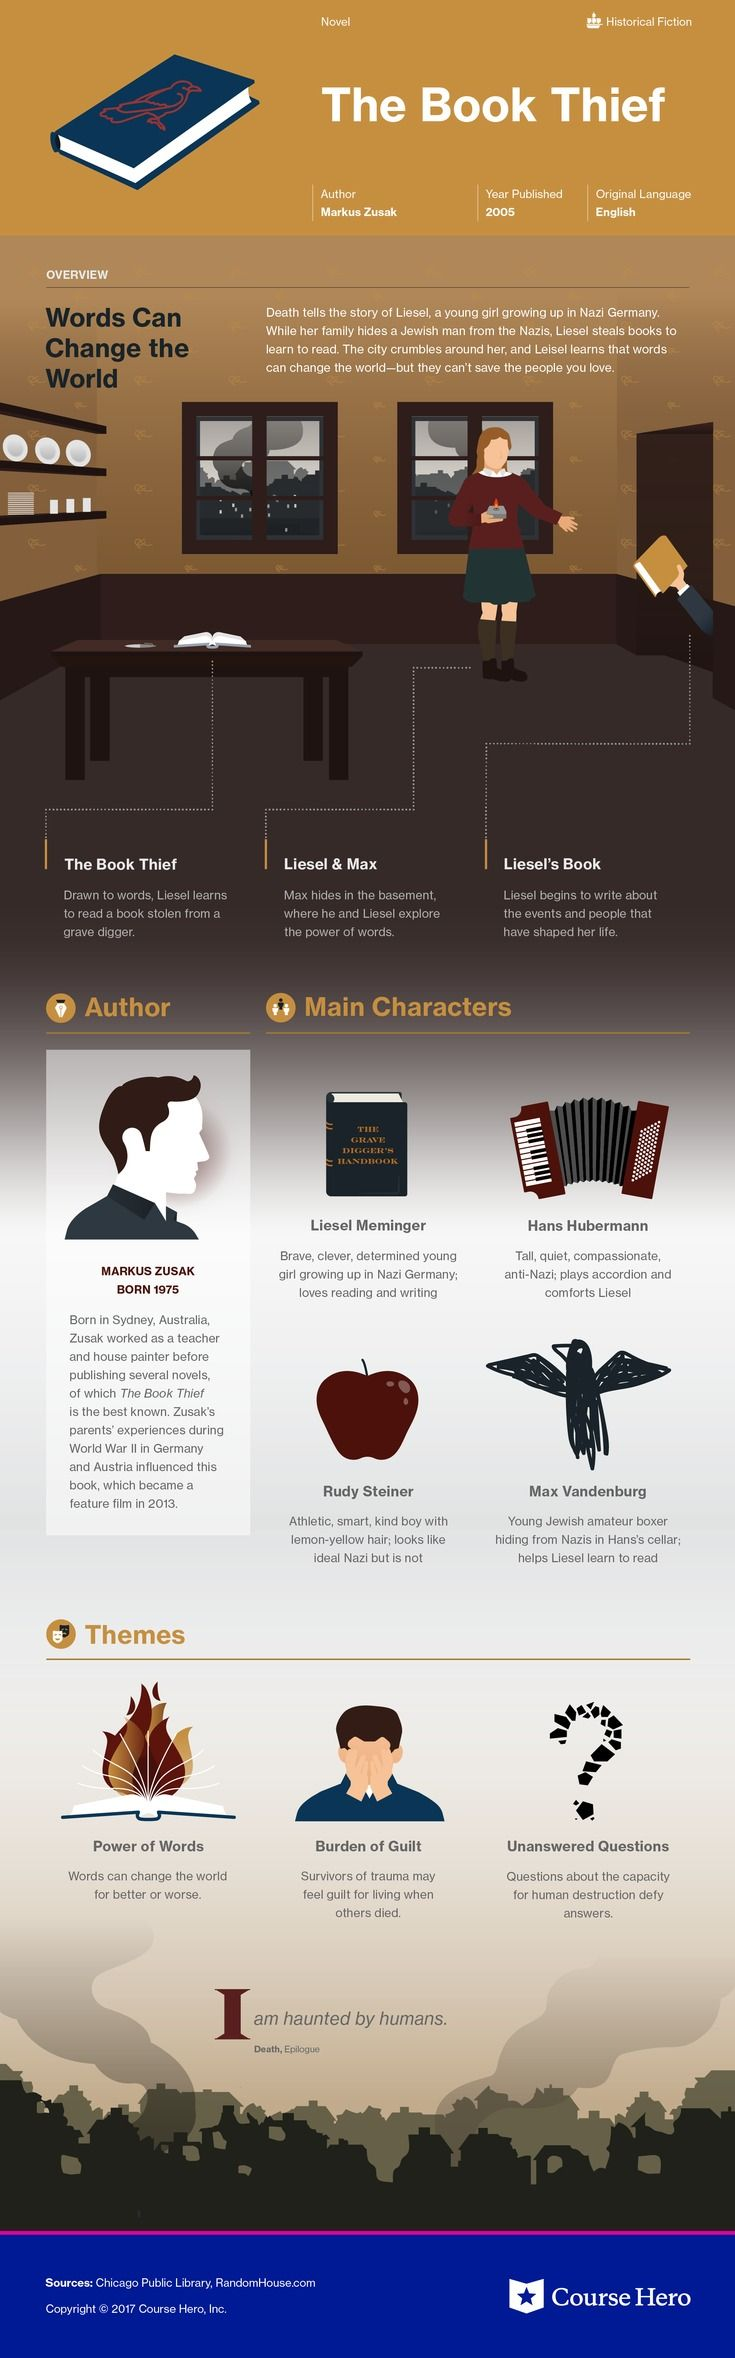 This @CourseHero infographic on The Book Thief is both visually stunning and informative!